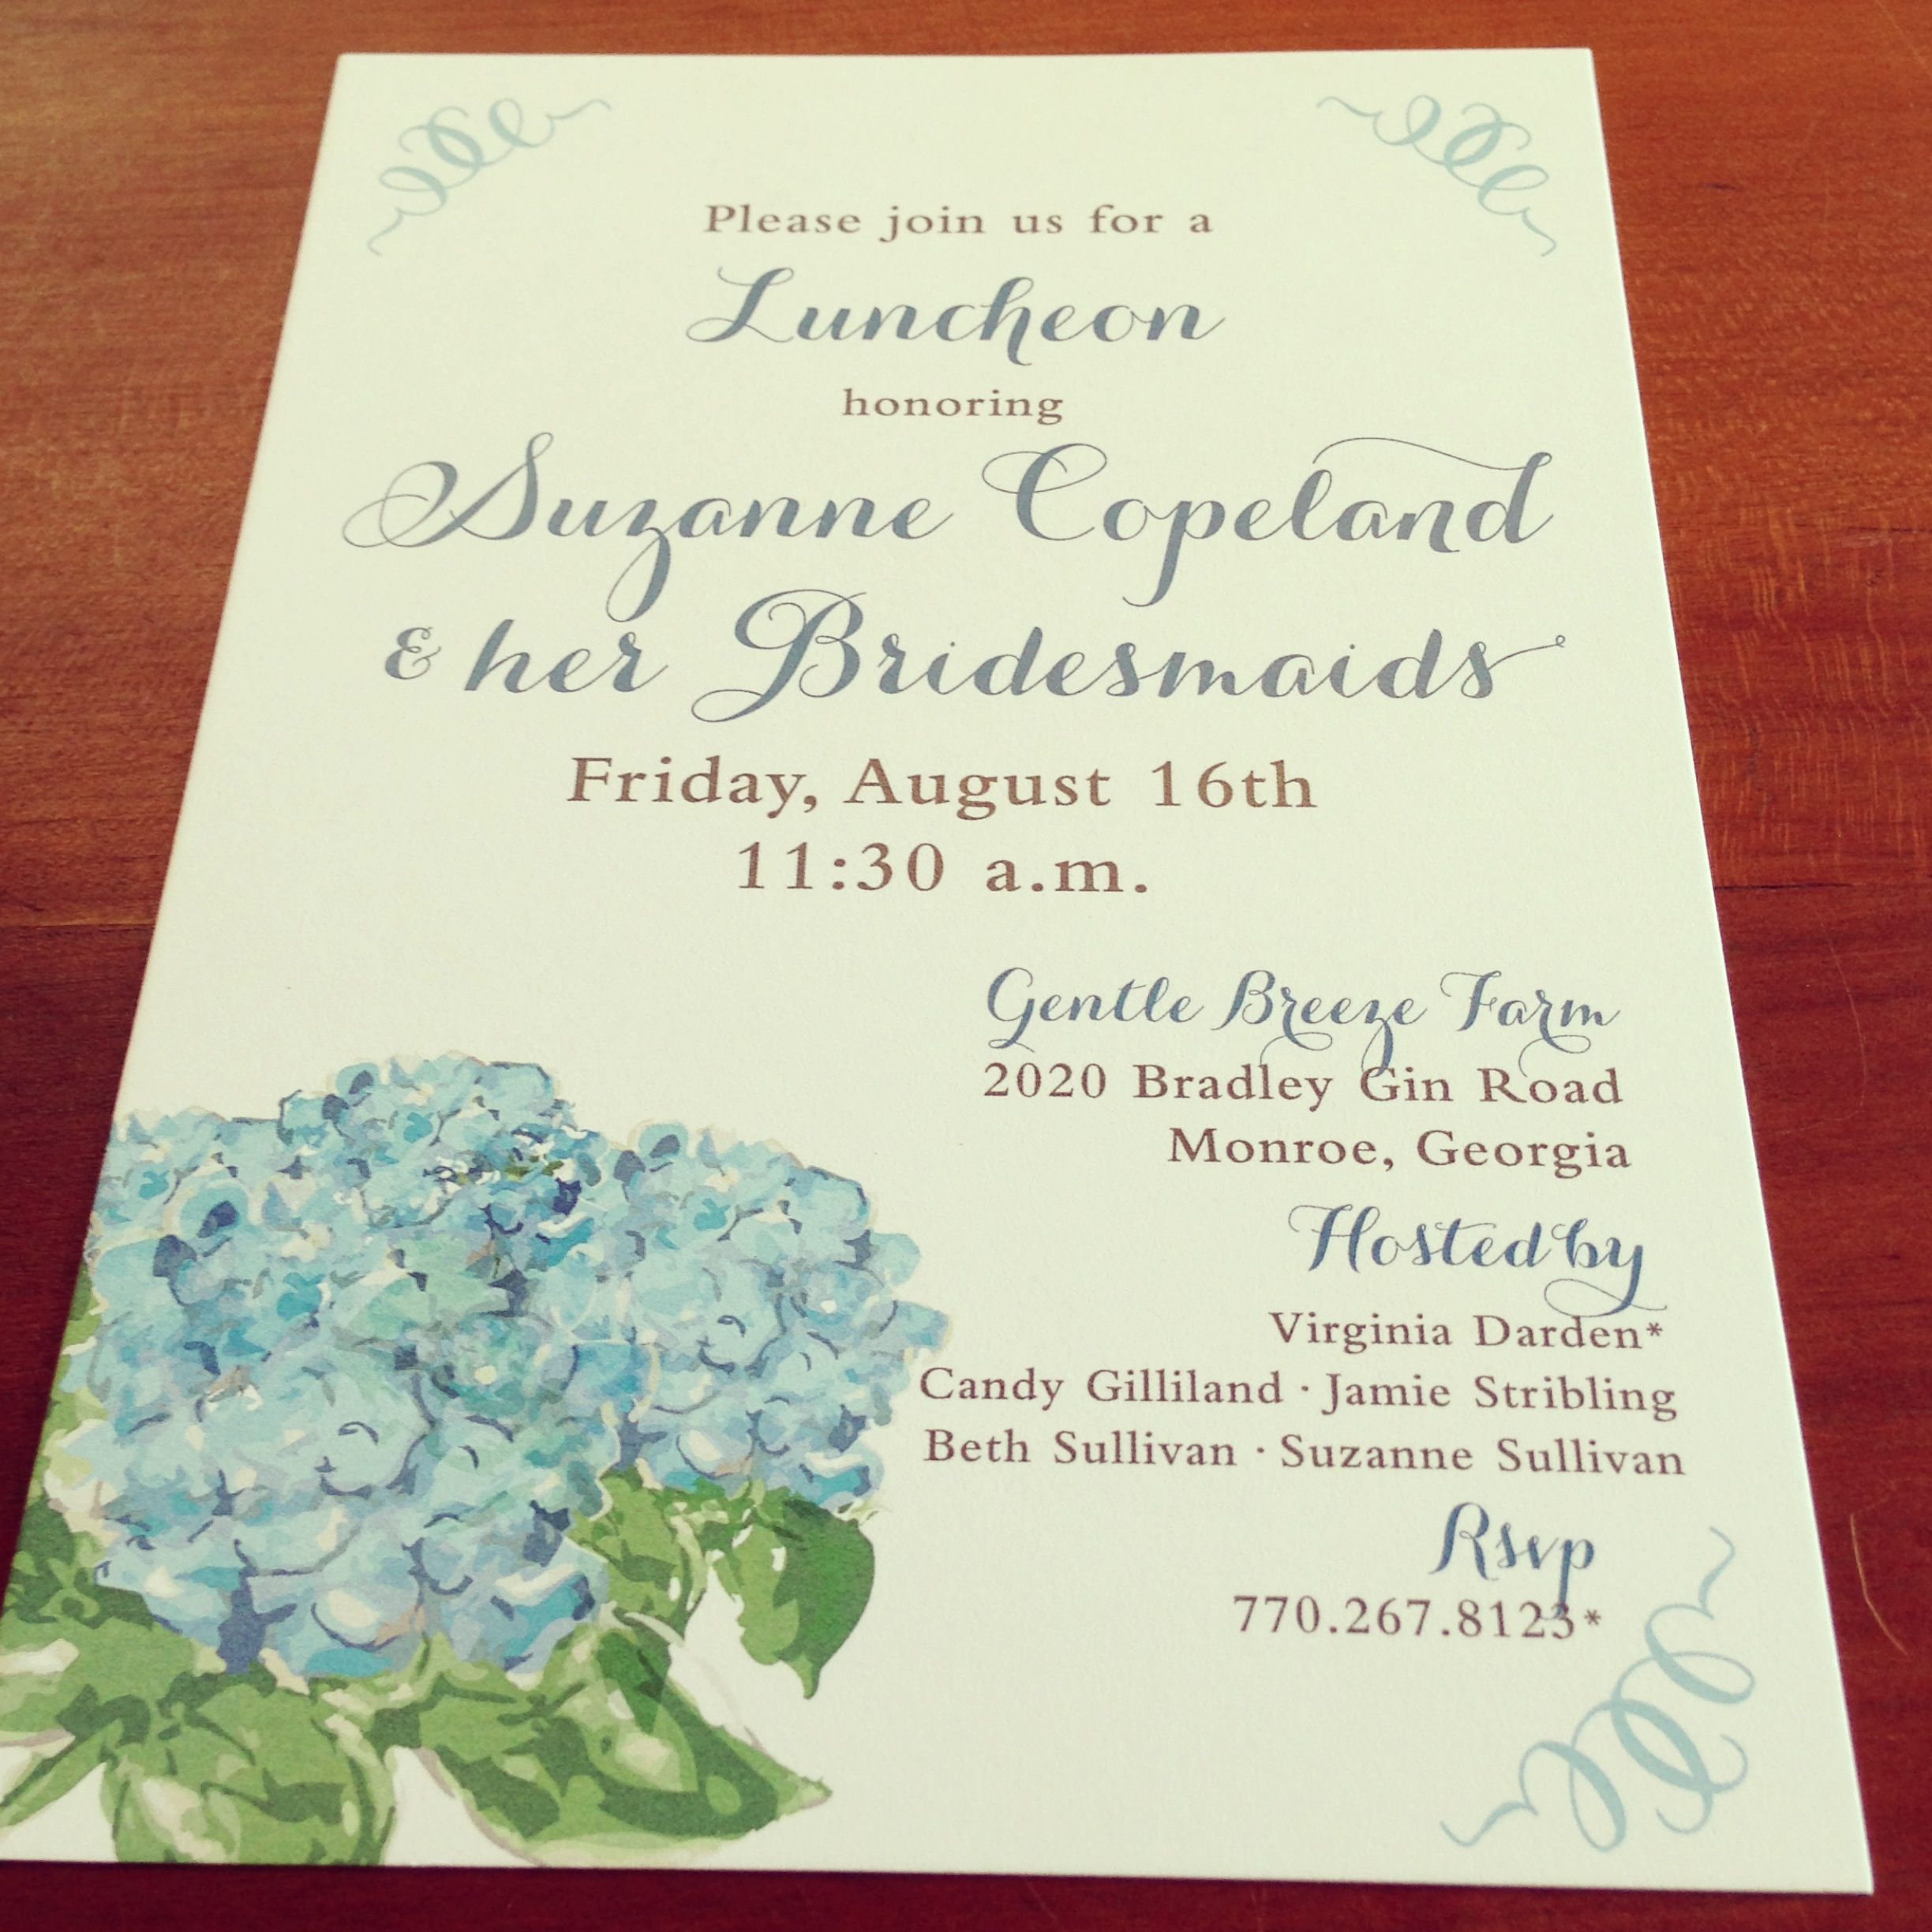 funny bachelorette party sayings for invitations%0A Bridesmaid luncheon invitation  plainjanedesigns  athens  bridesmaids   luncheon